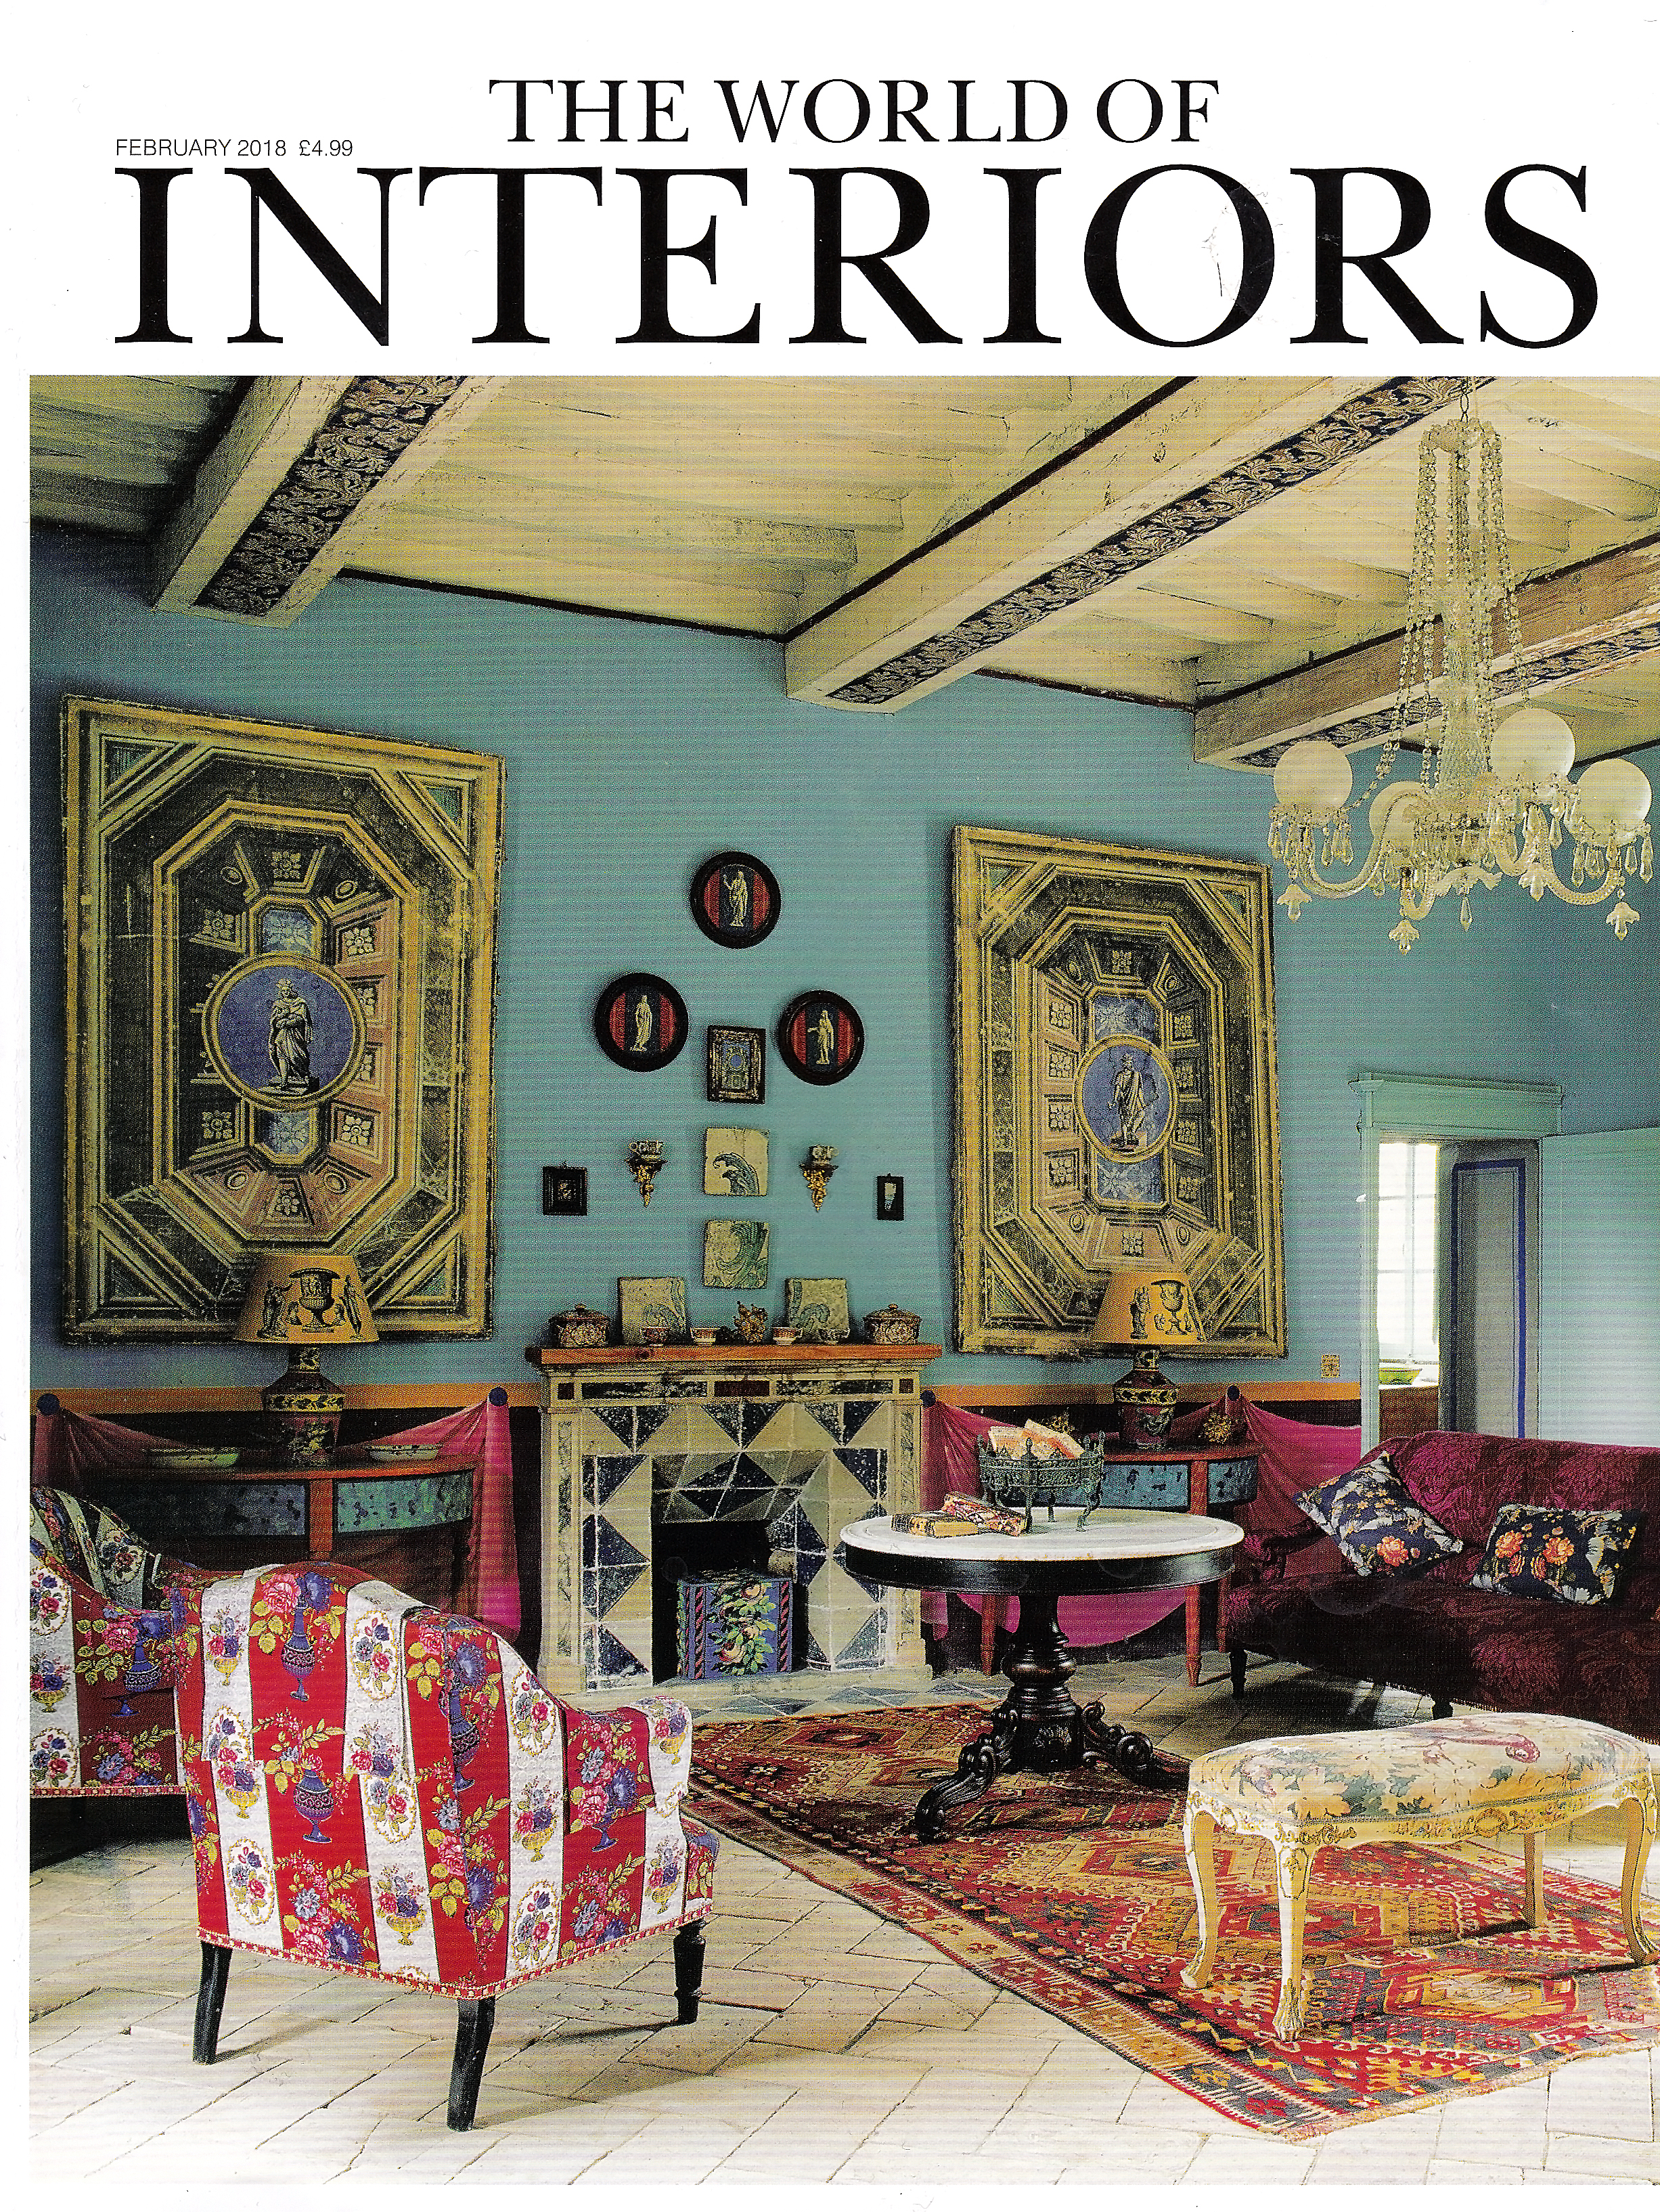 WORLD OF INTERIORS, FEB 2018.jpg